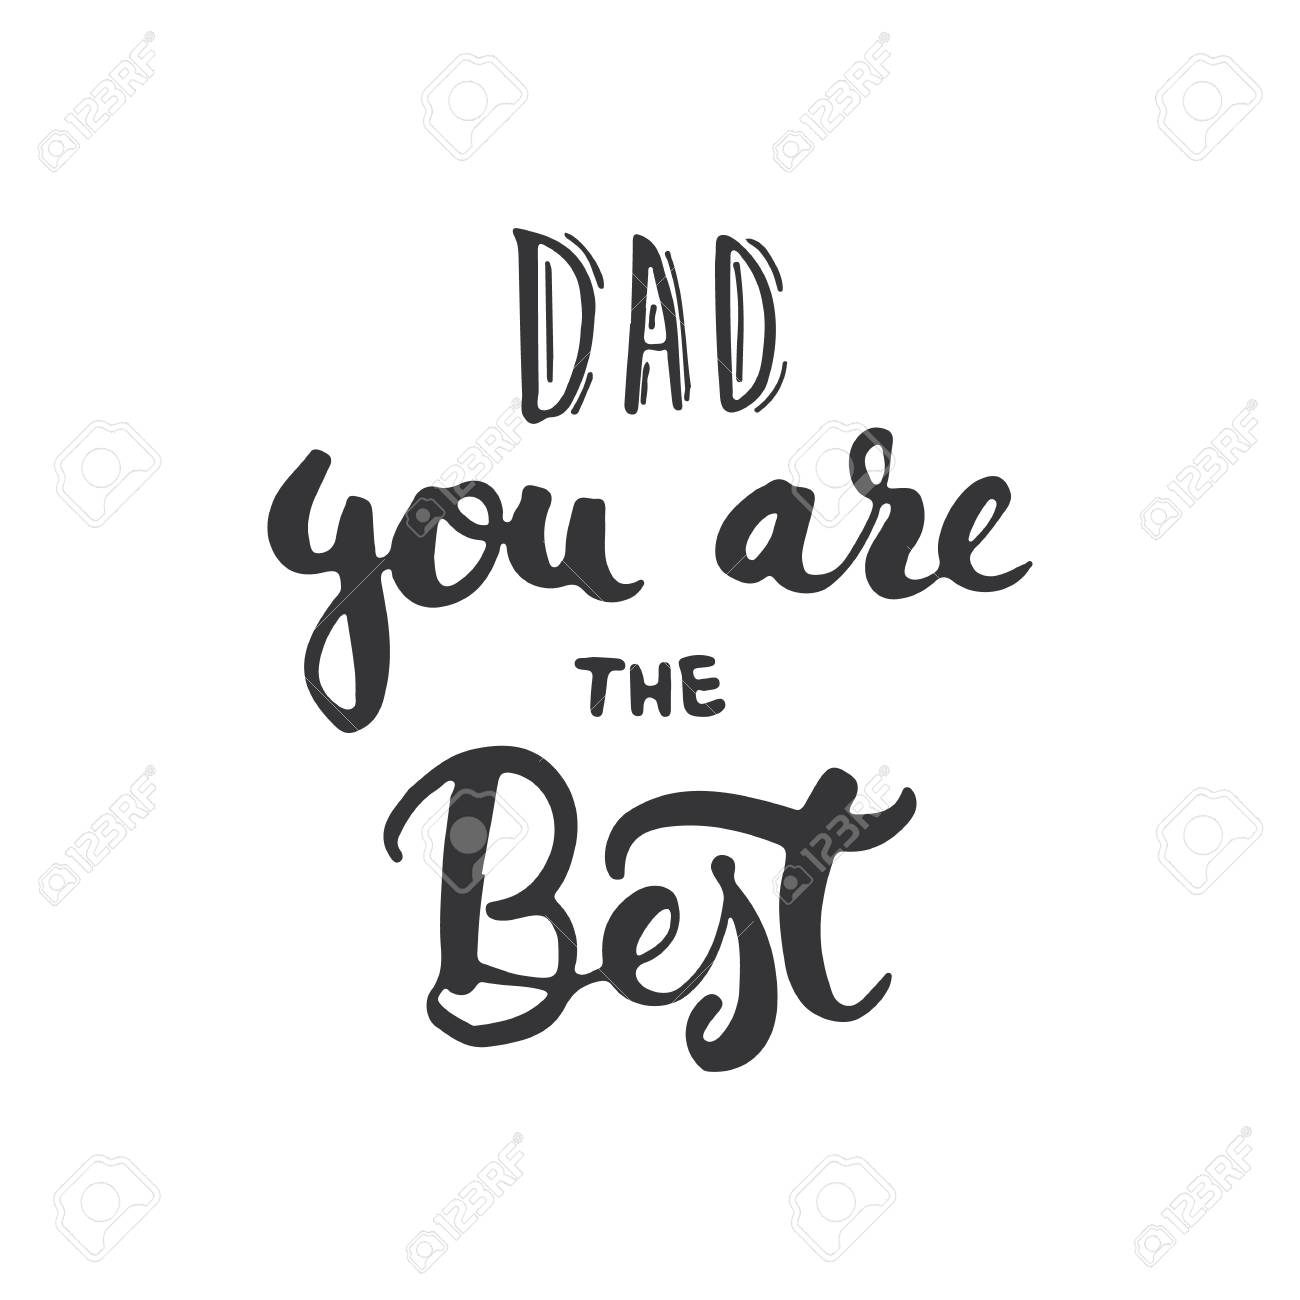 Fathers day lettering calligraphy phrase dad you are the best fathers day lettering calligraphy phrase dad you are the best greeting card isolated on kristyandbryce Image collections